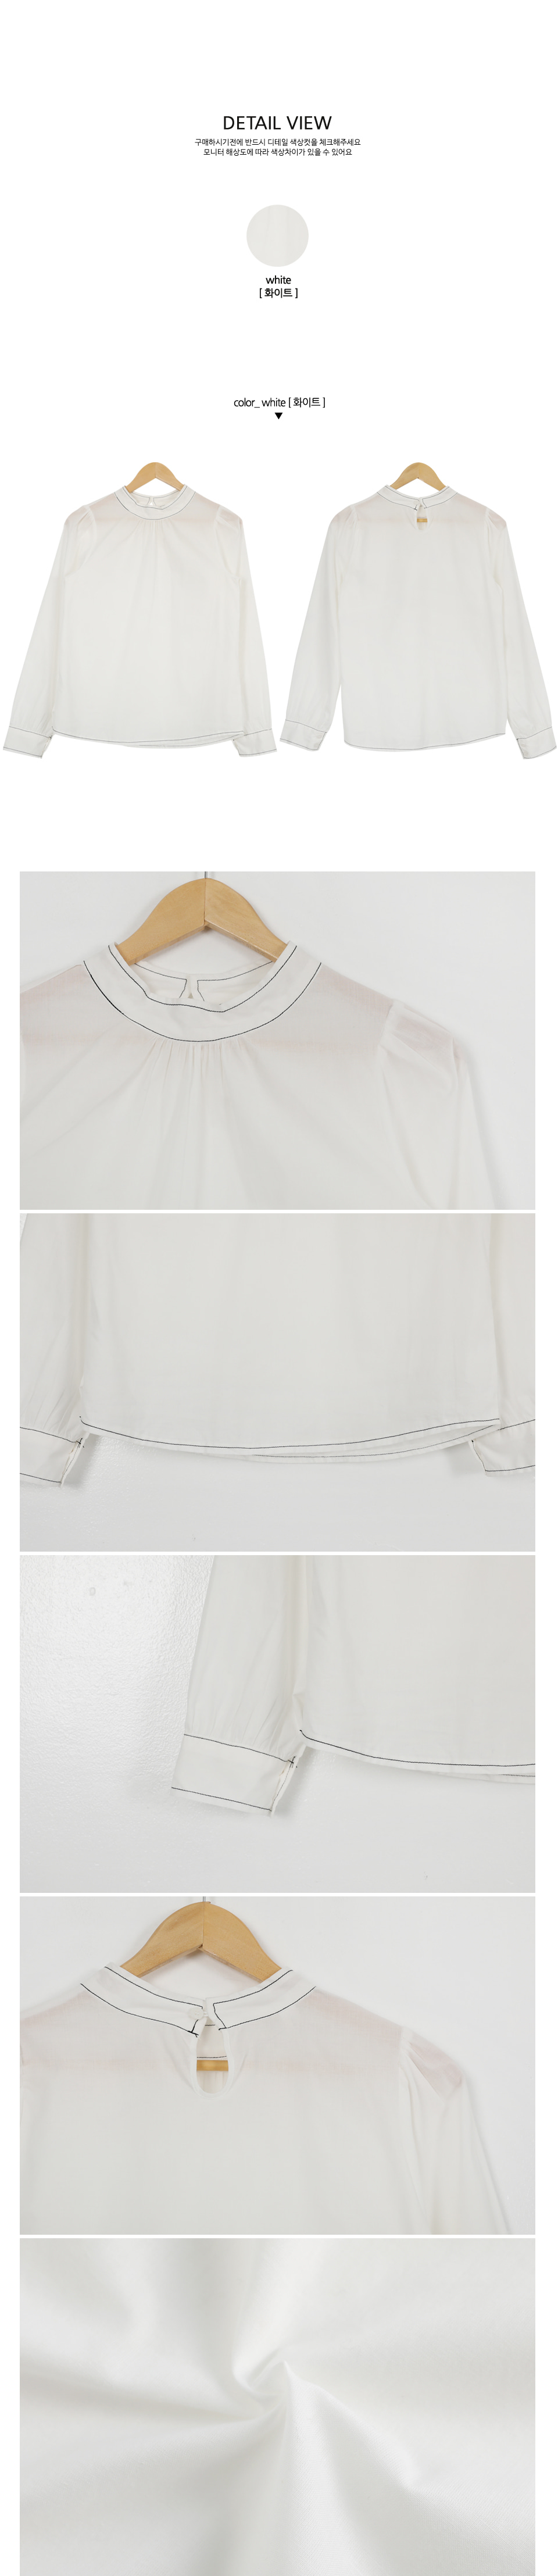 Nudel puff blouse